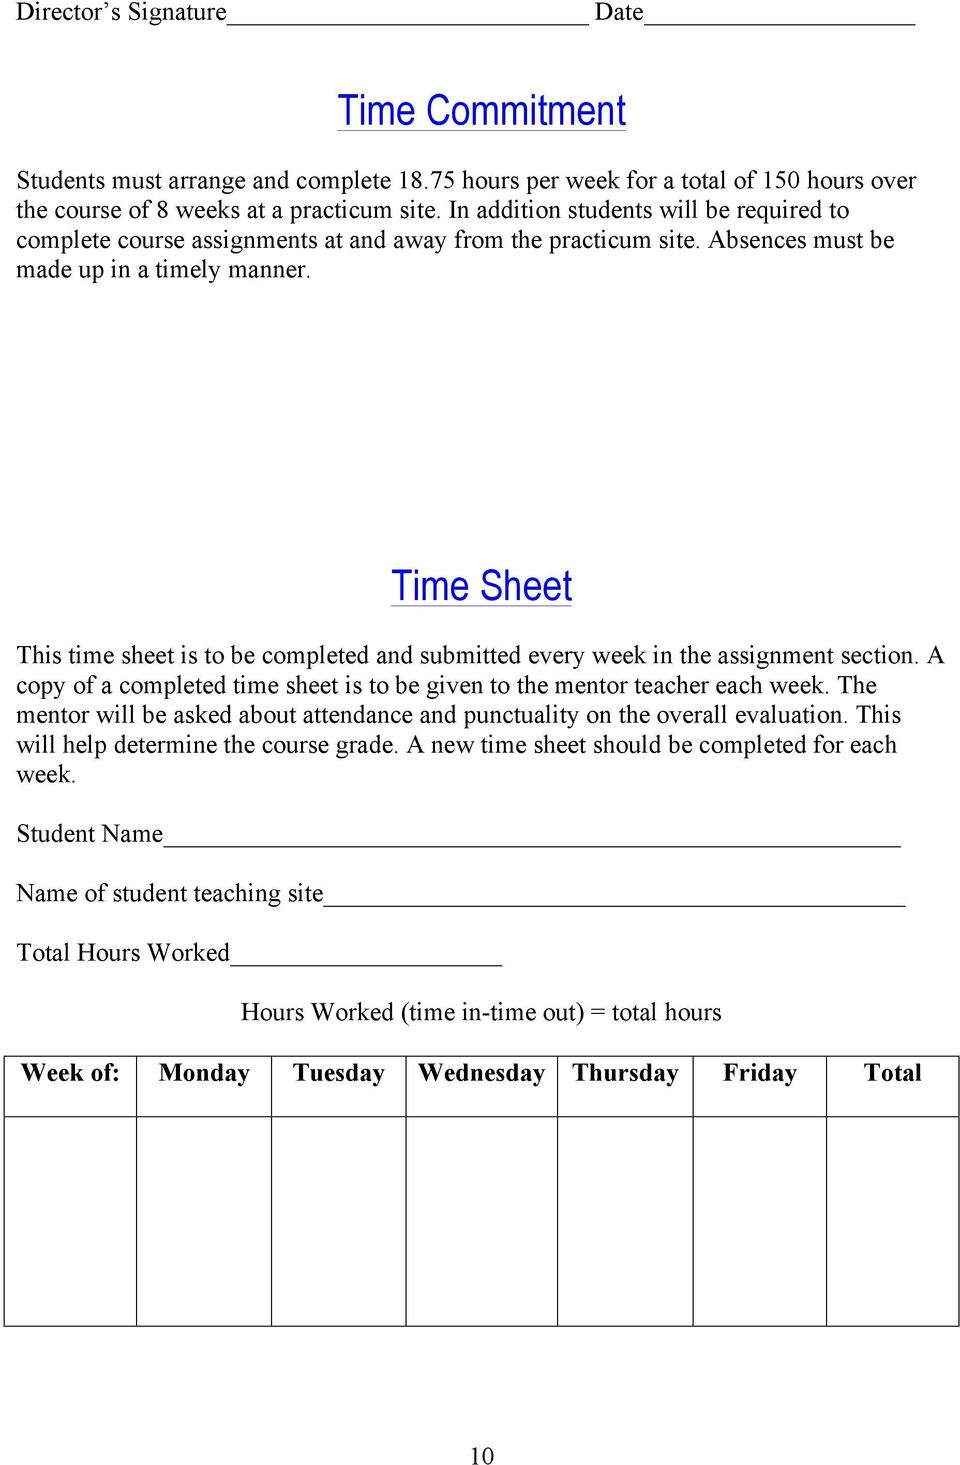 Time Sheet This time sheet is to be completed and submitted every week in the assignment section. A copy of a completed time sheet is to be given to the mentor teacher each week.